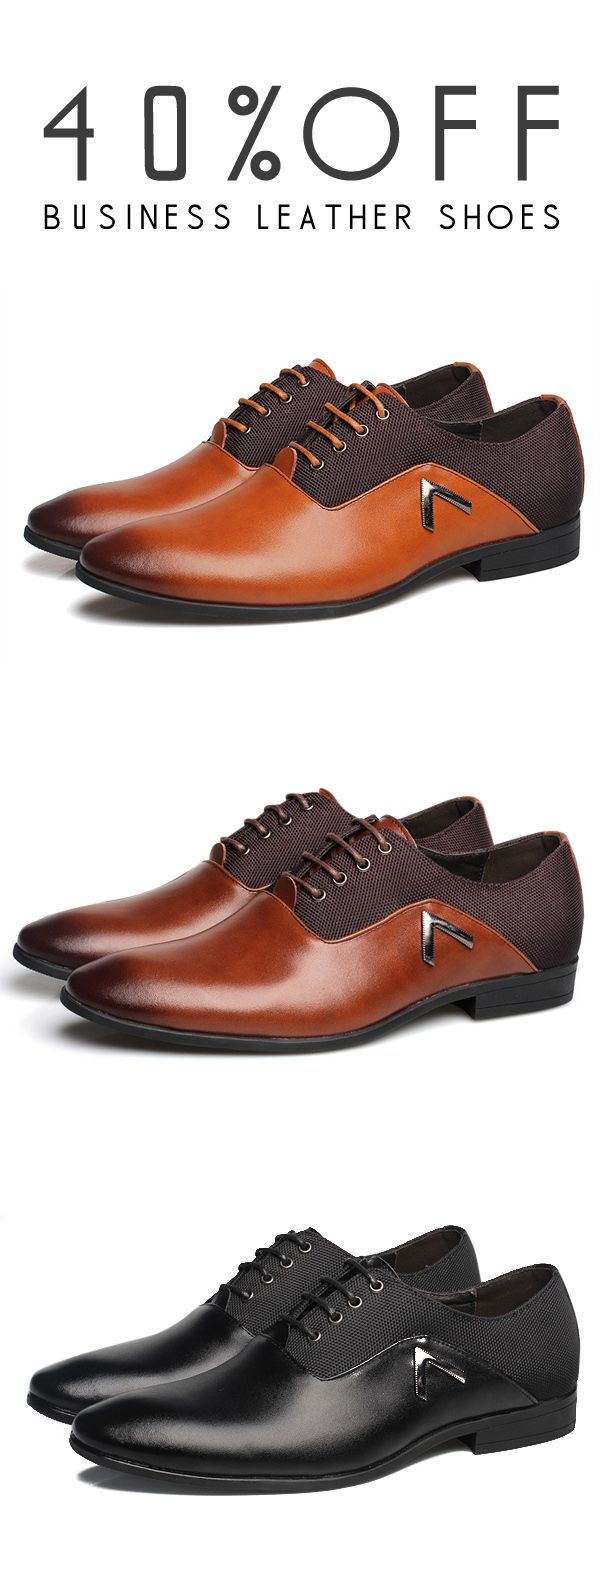 40%OFF&Free shipping. Business Shoes, Leather, Comfortable, Pointed Toe, Casual, Soft Leather Shoes. Color: Black, Brown, Khaki. Shop now~